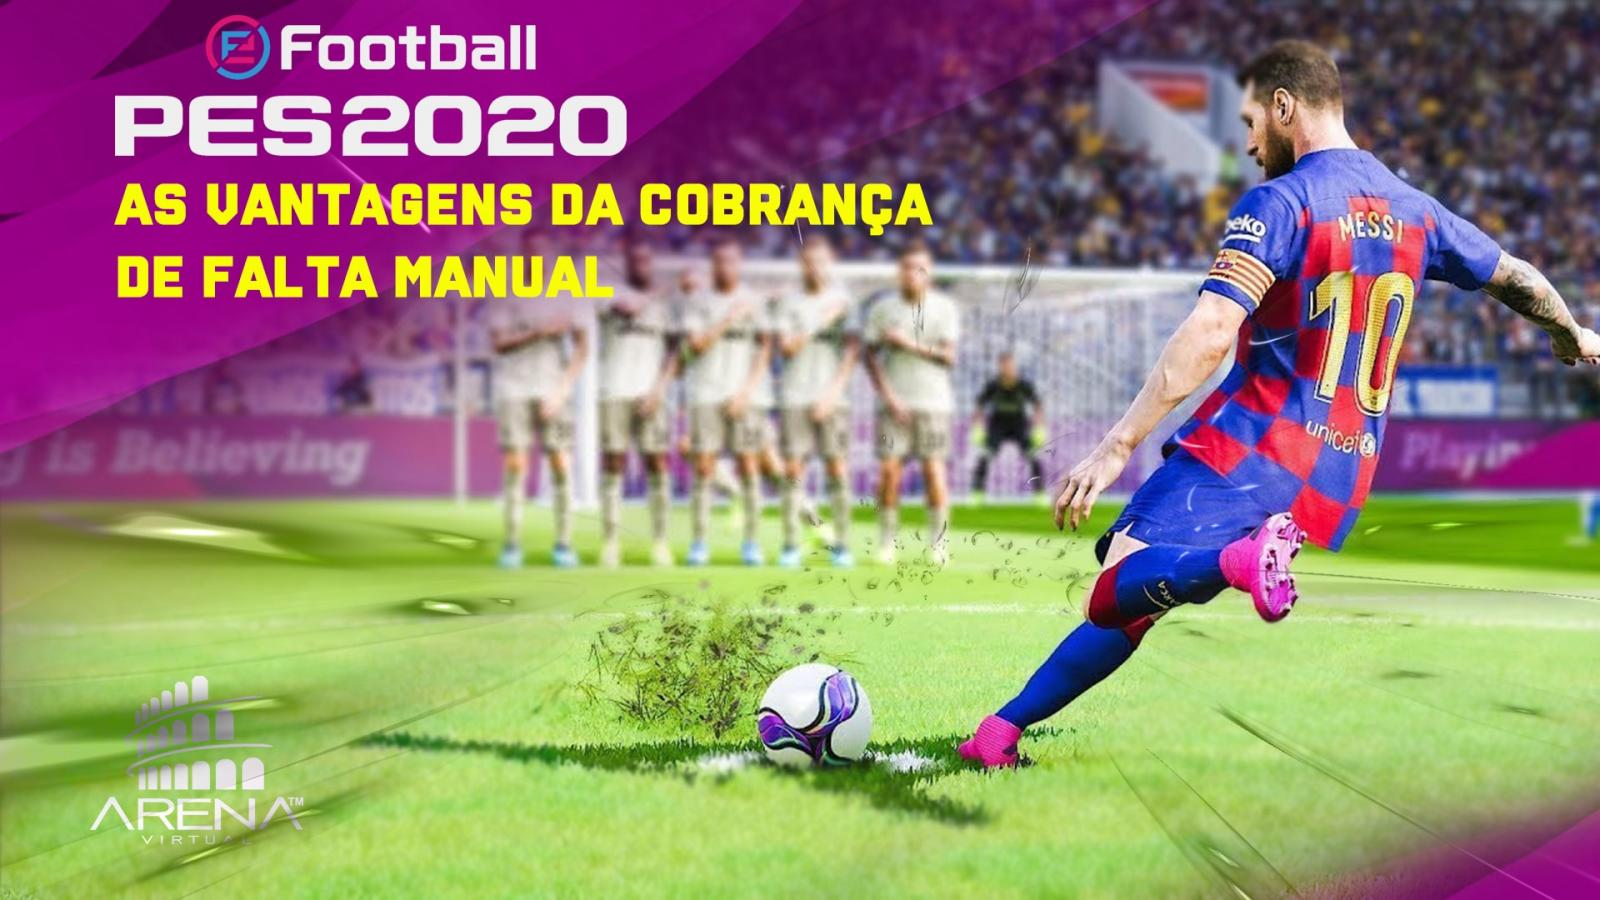 PES 2020 – AS VANTAGENS DA COBRANÇA DE FALTA MANUAL